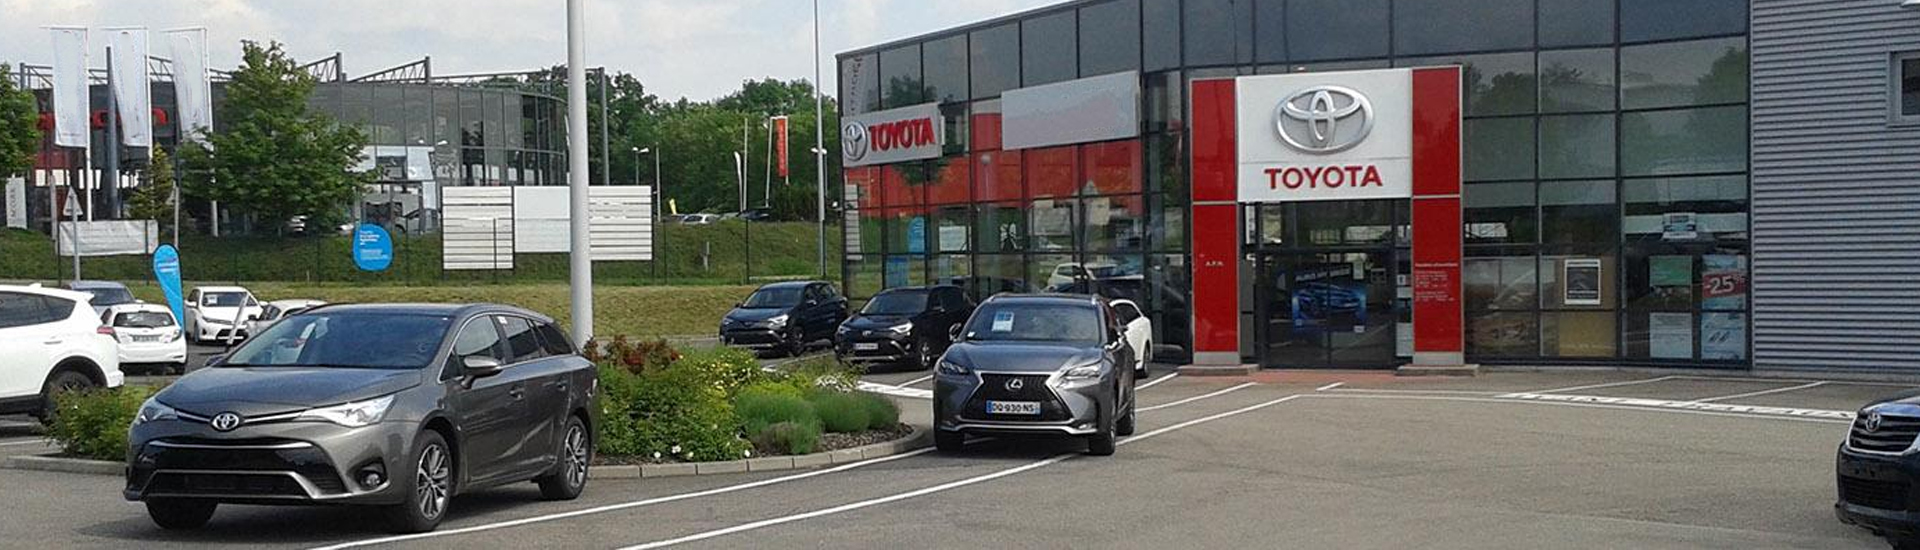 Concession TOYOTA Toys Motors Saverne.